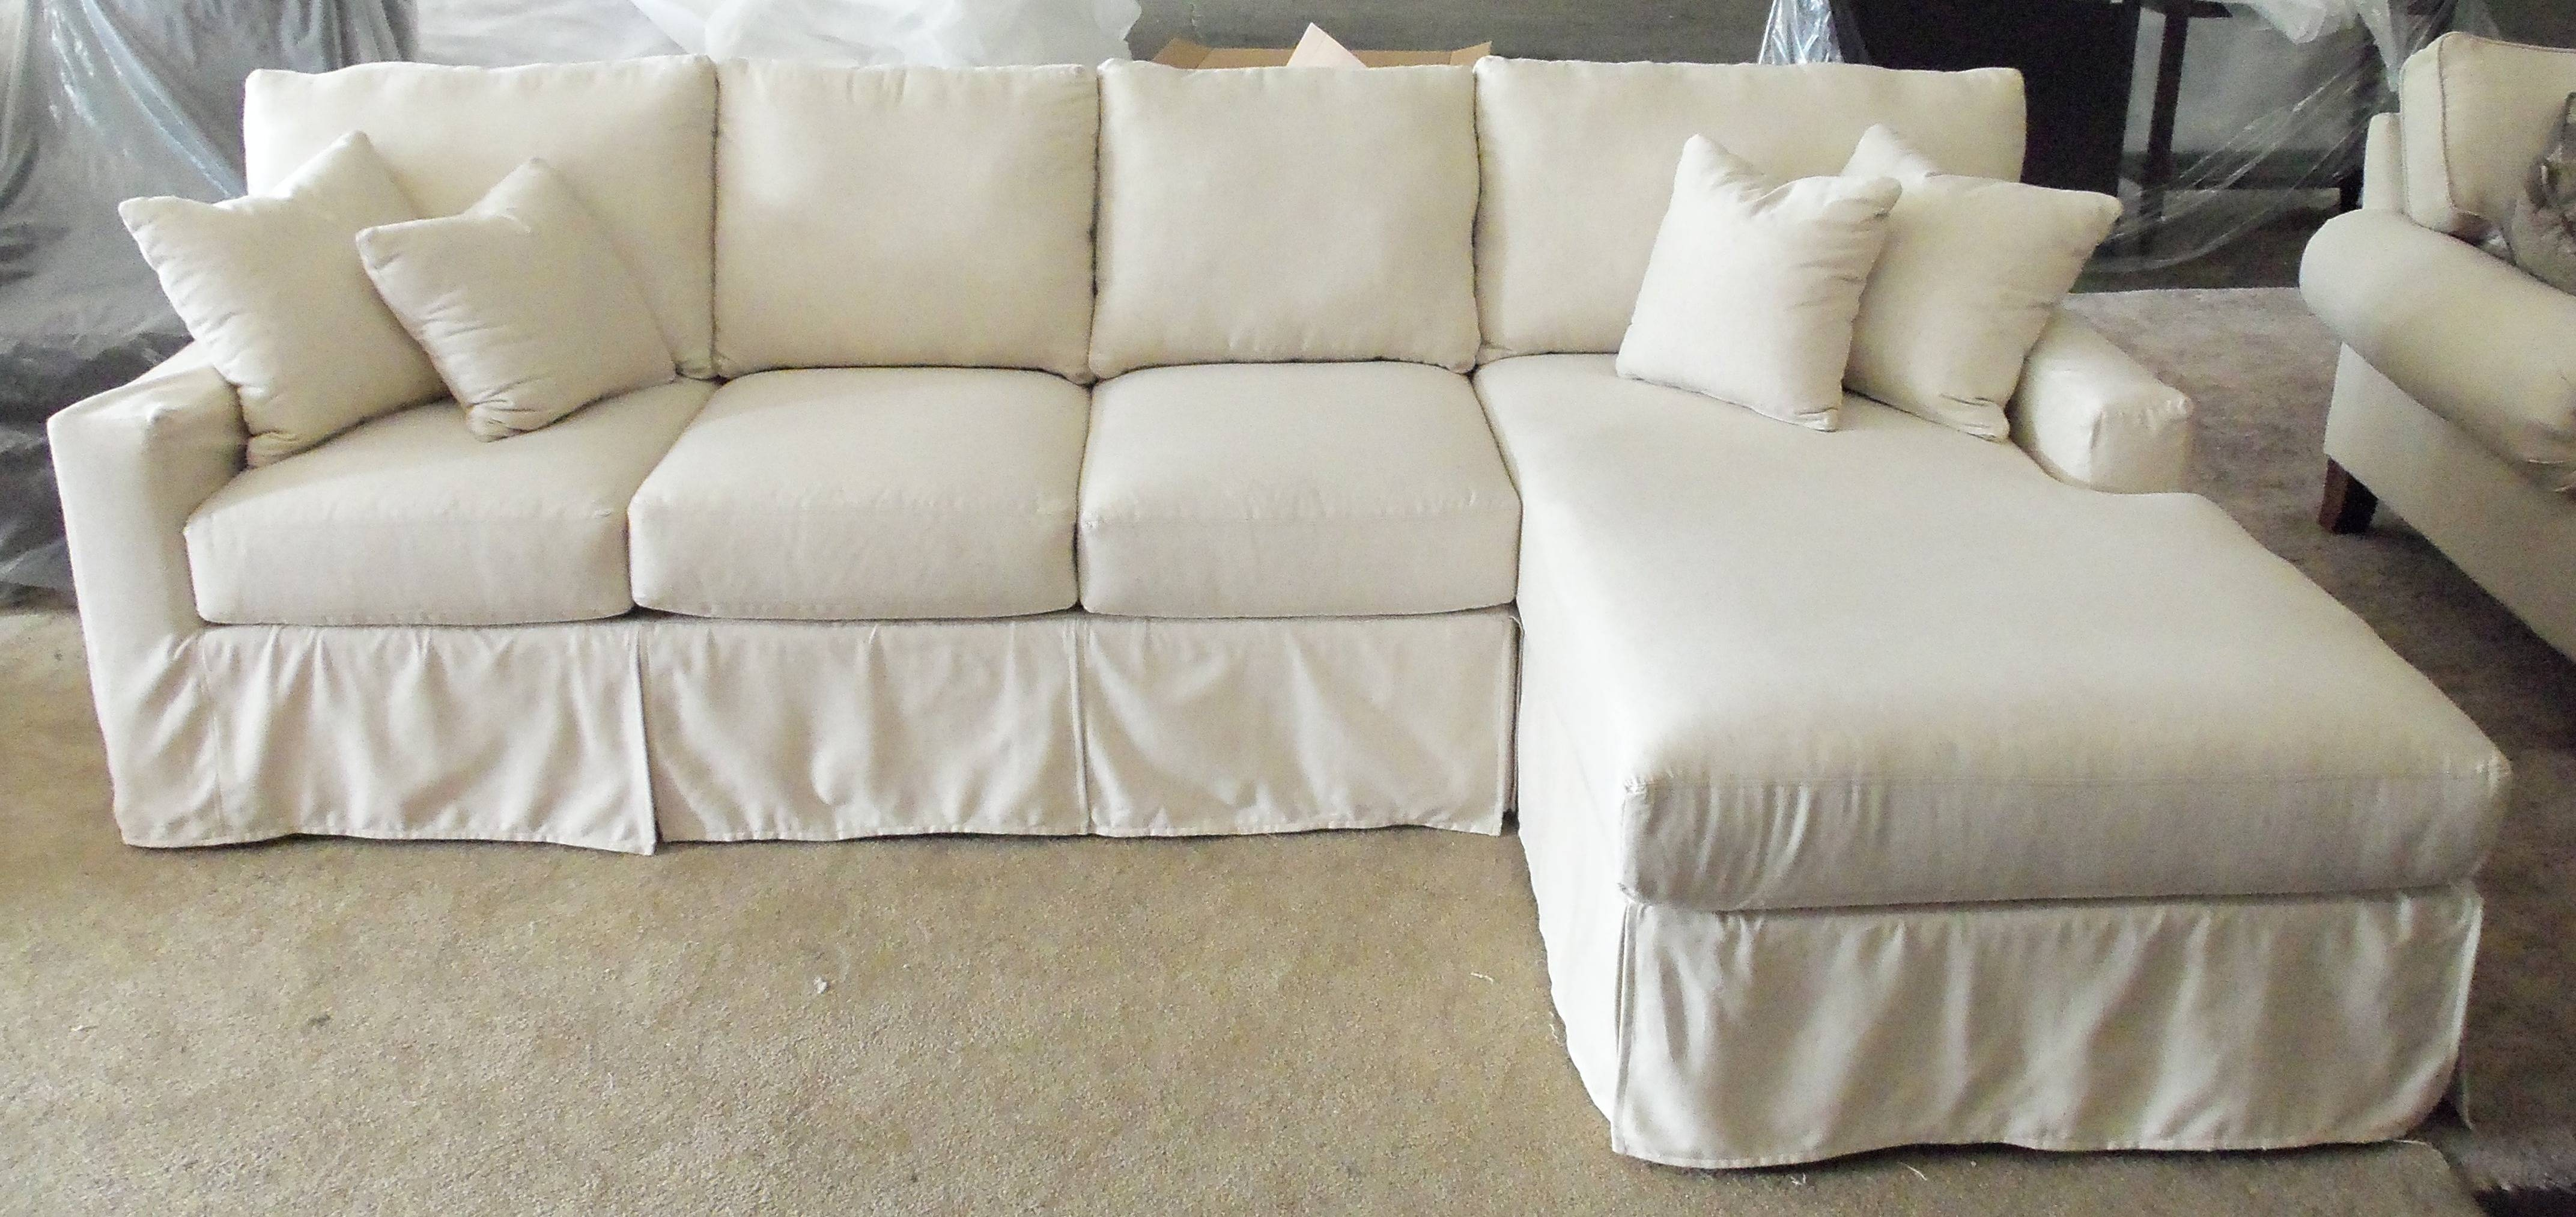 Slipcover For Sectional Sofa With Chaise - Cleanupflorida inside Slipcovered Chaises (Image 9 of 15)